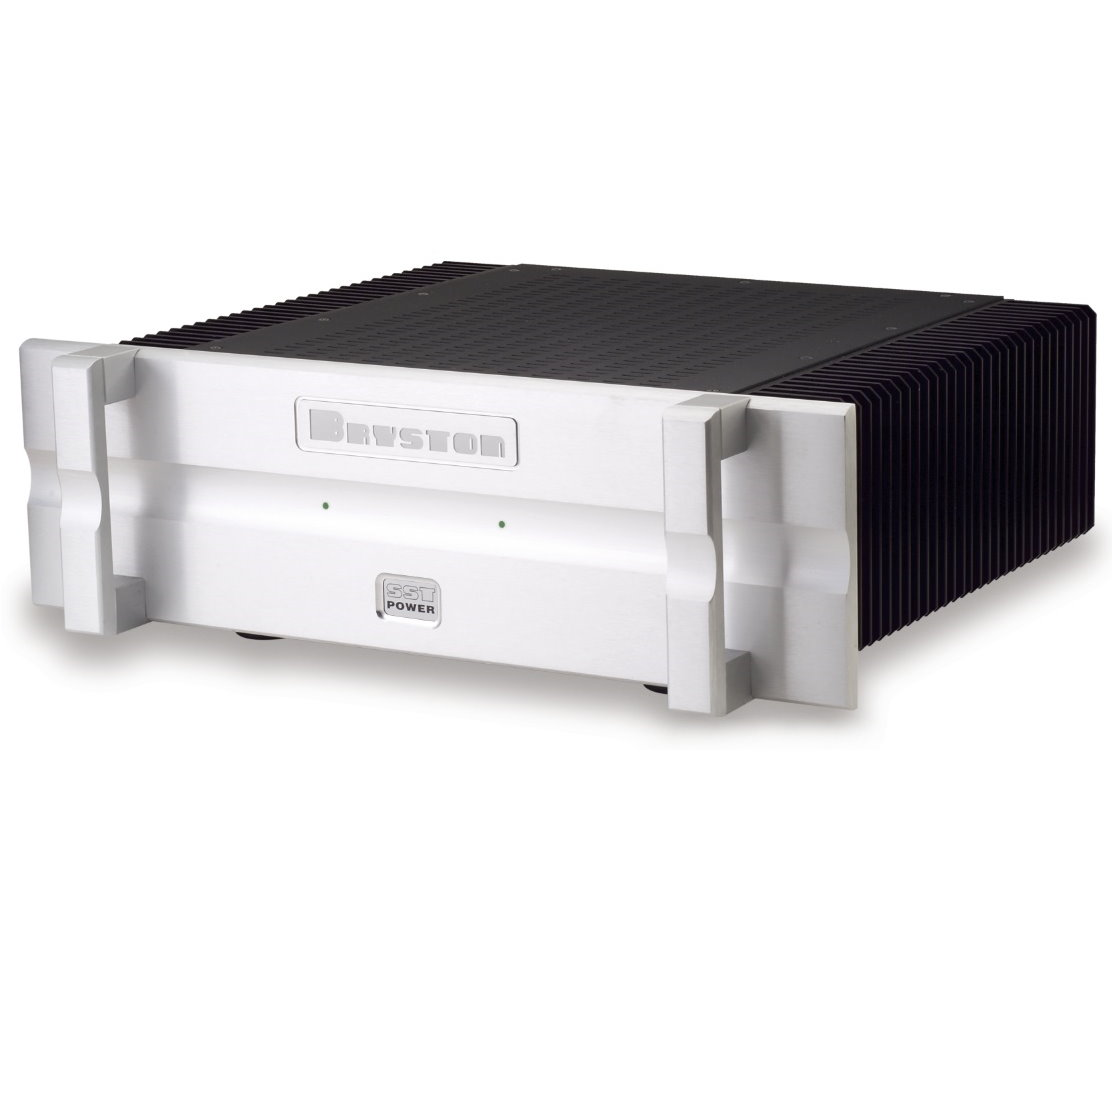 Bryston 3B Cubed Stereo Power Amplifier